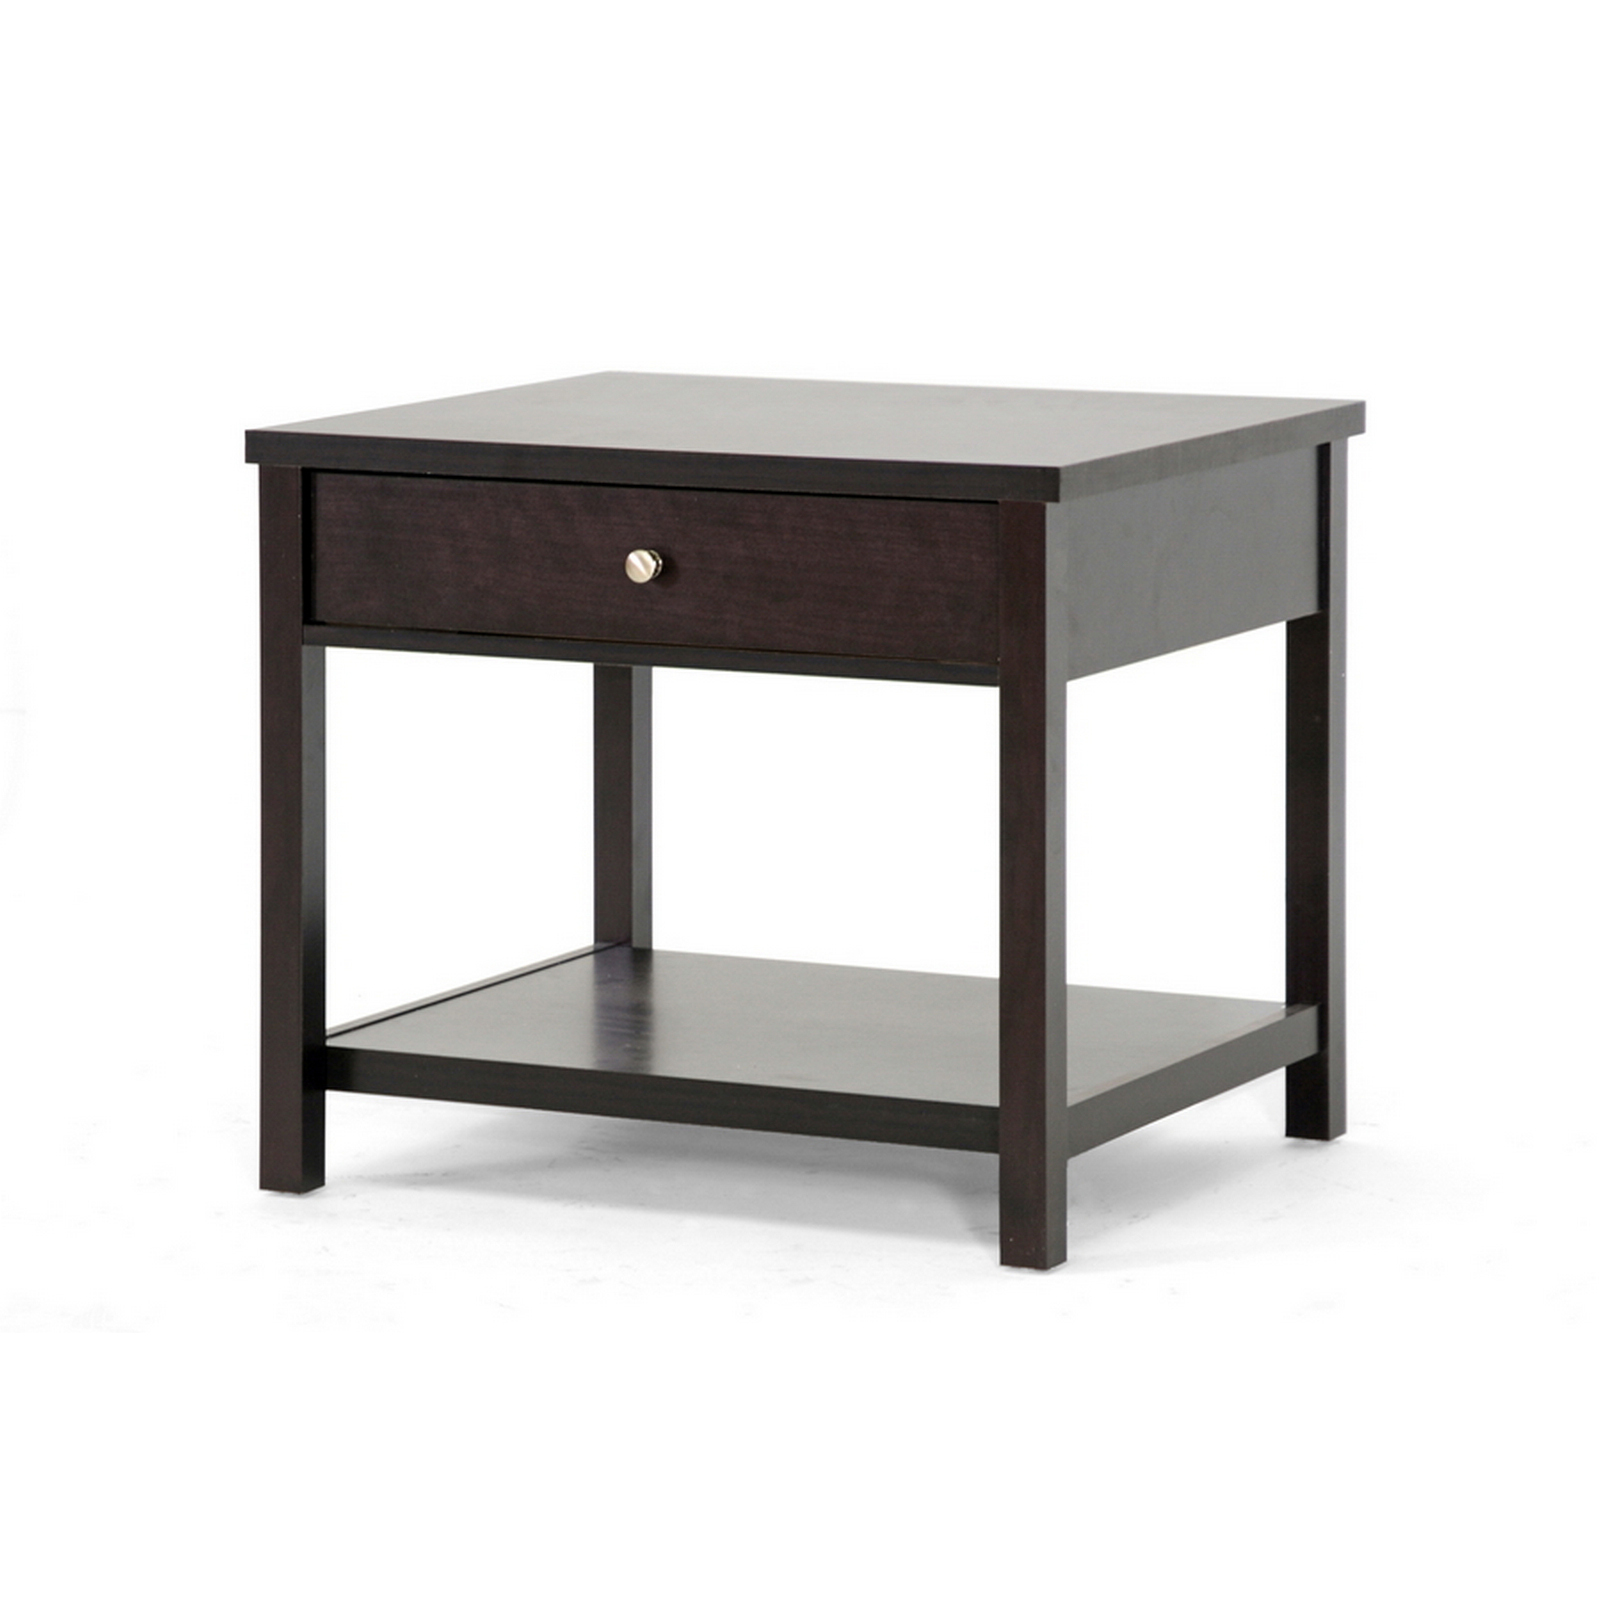 mom urban designs inch brown modern accent table and tables nightstand extendable coffee ikea standard height sofa end piece chair set tier antique chrome legs round wood iron